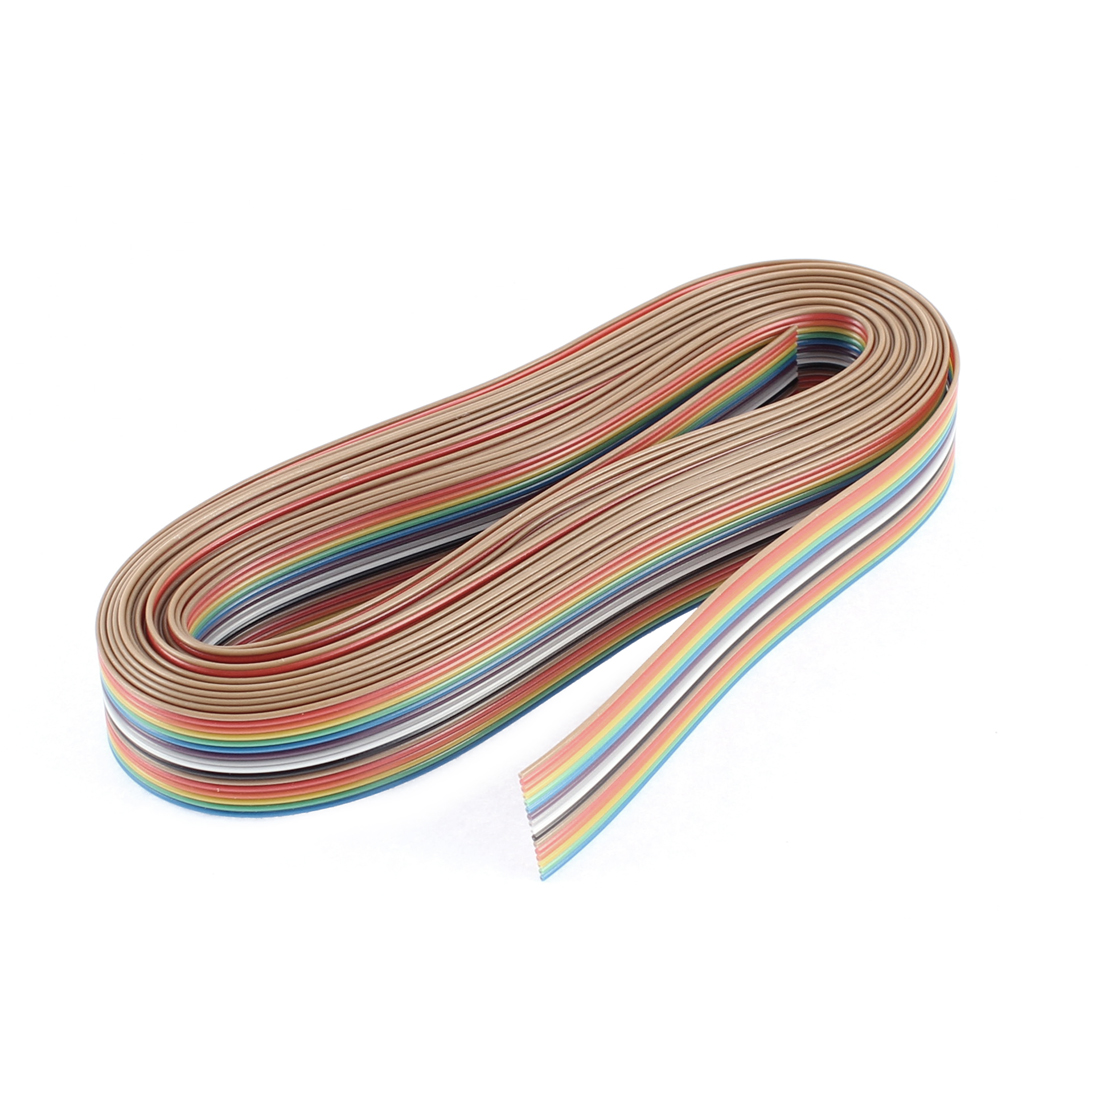 4.7M 15ft Long 2cm Width 1.27mm Pitch 16-Pin Conductor Rainbow Color Flat Ribbon Cable IDC Wire